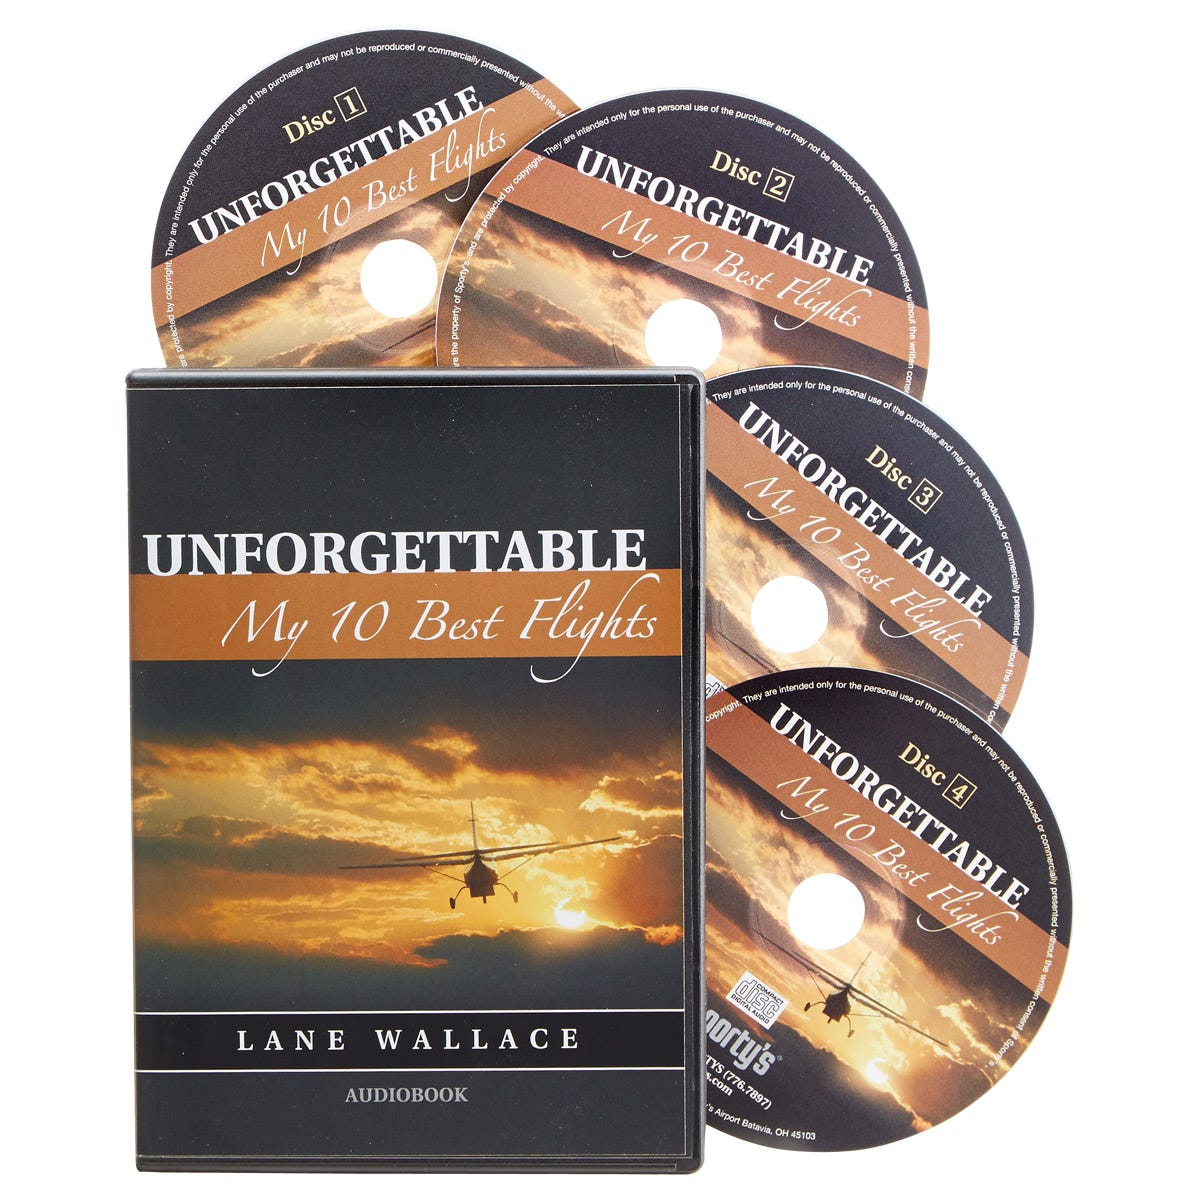 Unforgettable audio book